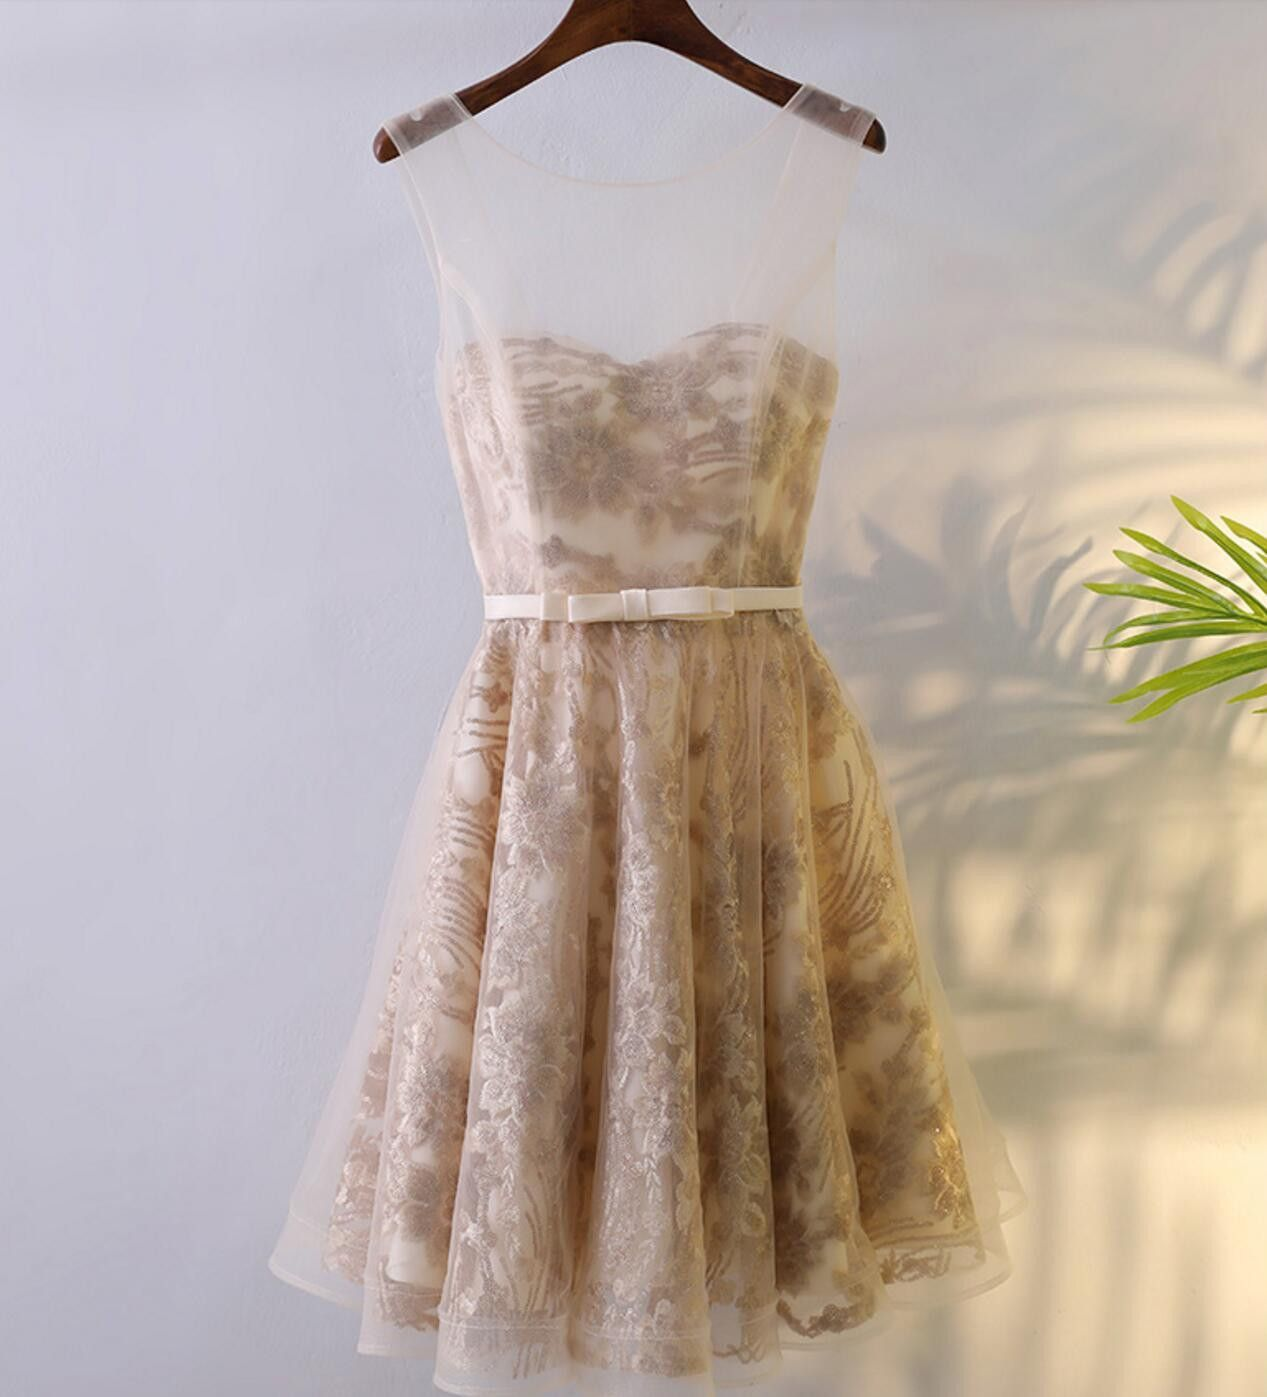 Lace Round Neckline Short Homecoming Prom Dresses, Affordable Corset Back Short Party Prom Dresses, Perfect Homecoming Dresses, CM246